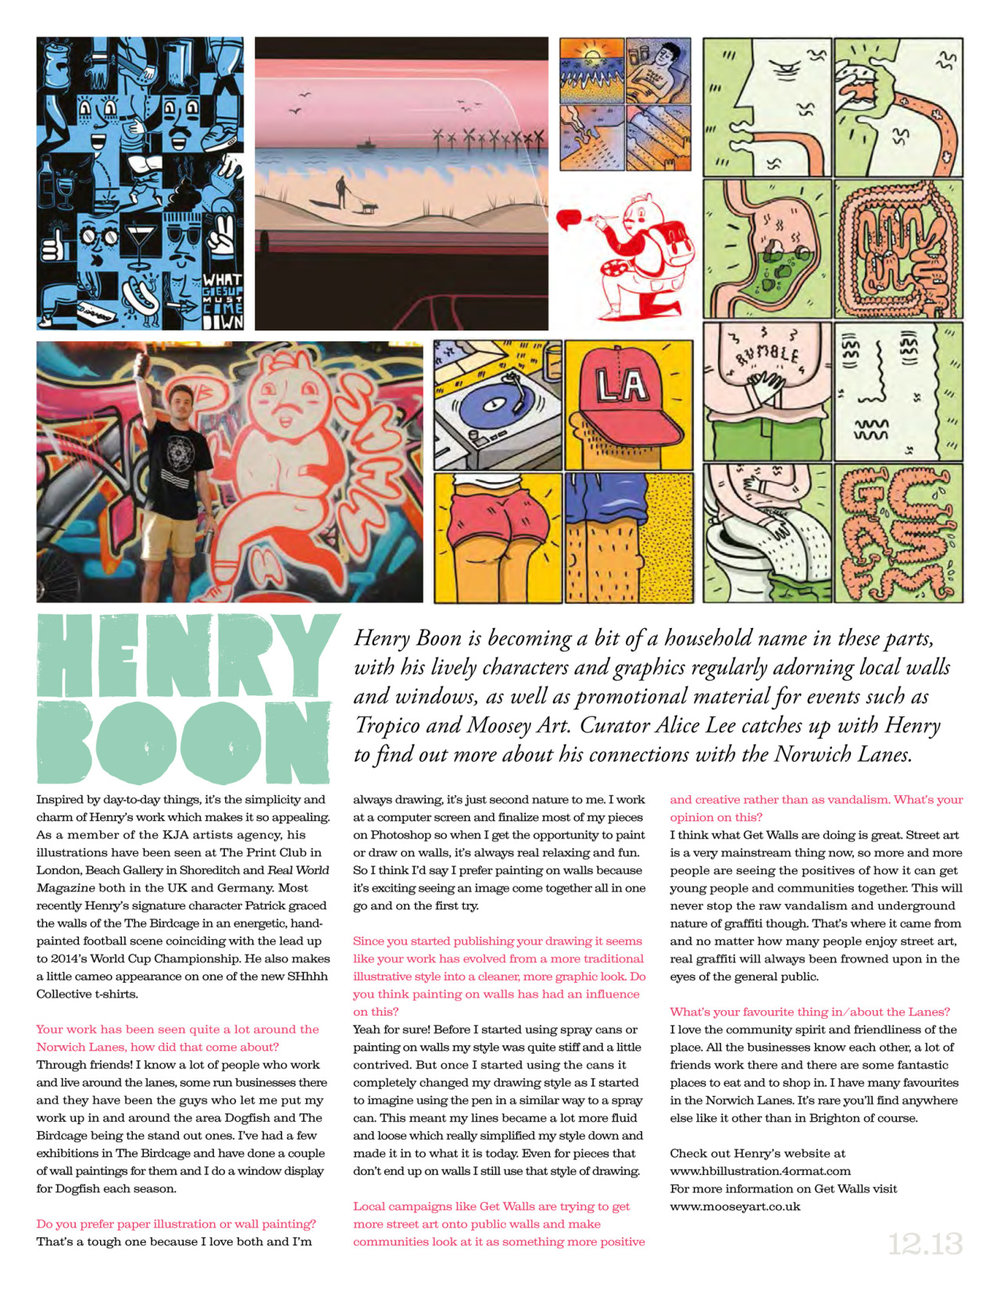 As we currently gather all the content for the next issue of The Lanes Paper, due out in time for Norwich Sound & Vision Festival, here's a quick recap on the last one with our interview with Henry Boon. Copies of the physical paper are still available in most of The Lanes local businesses and shops.